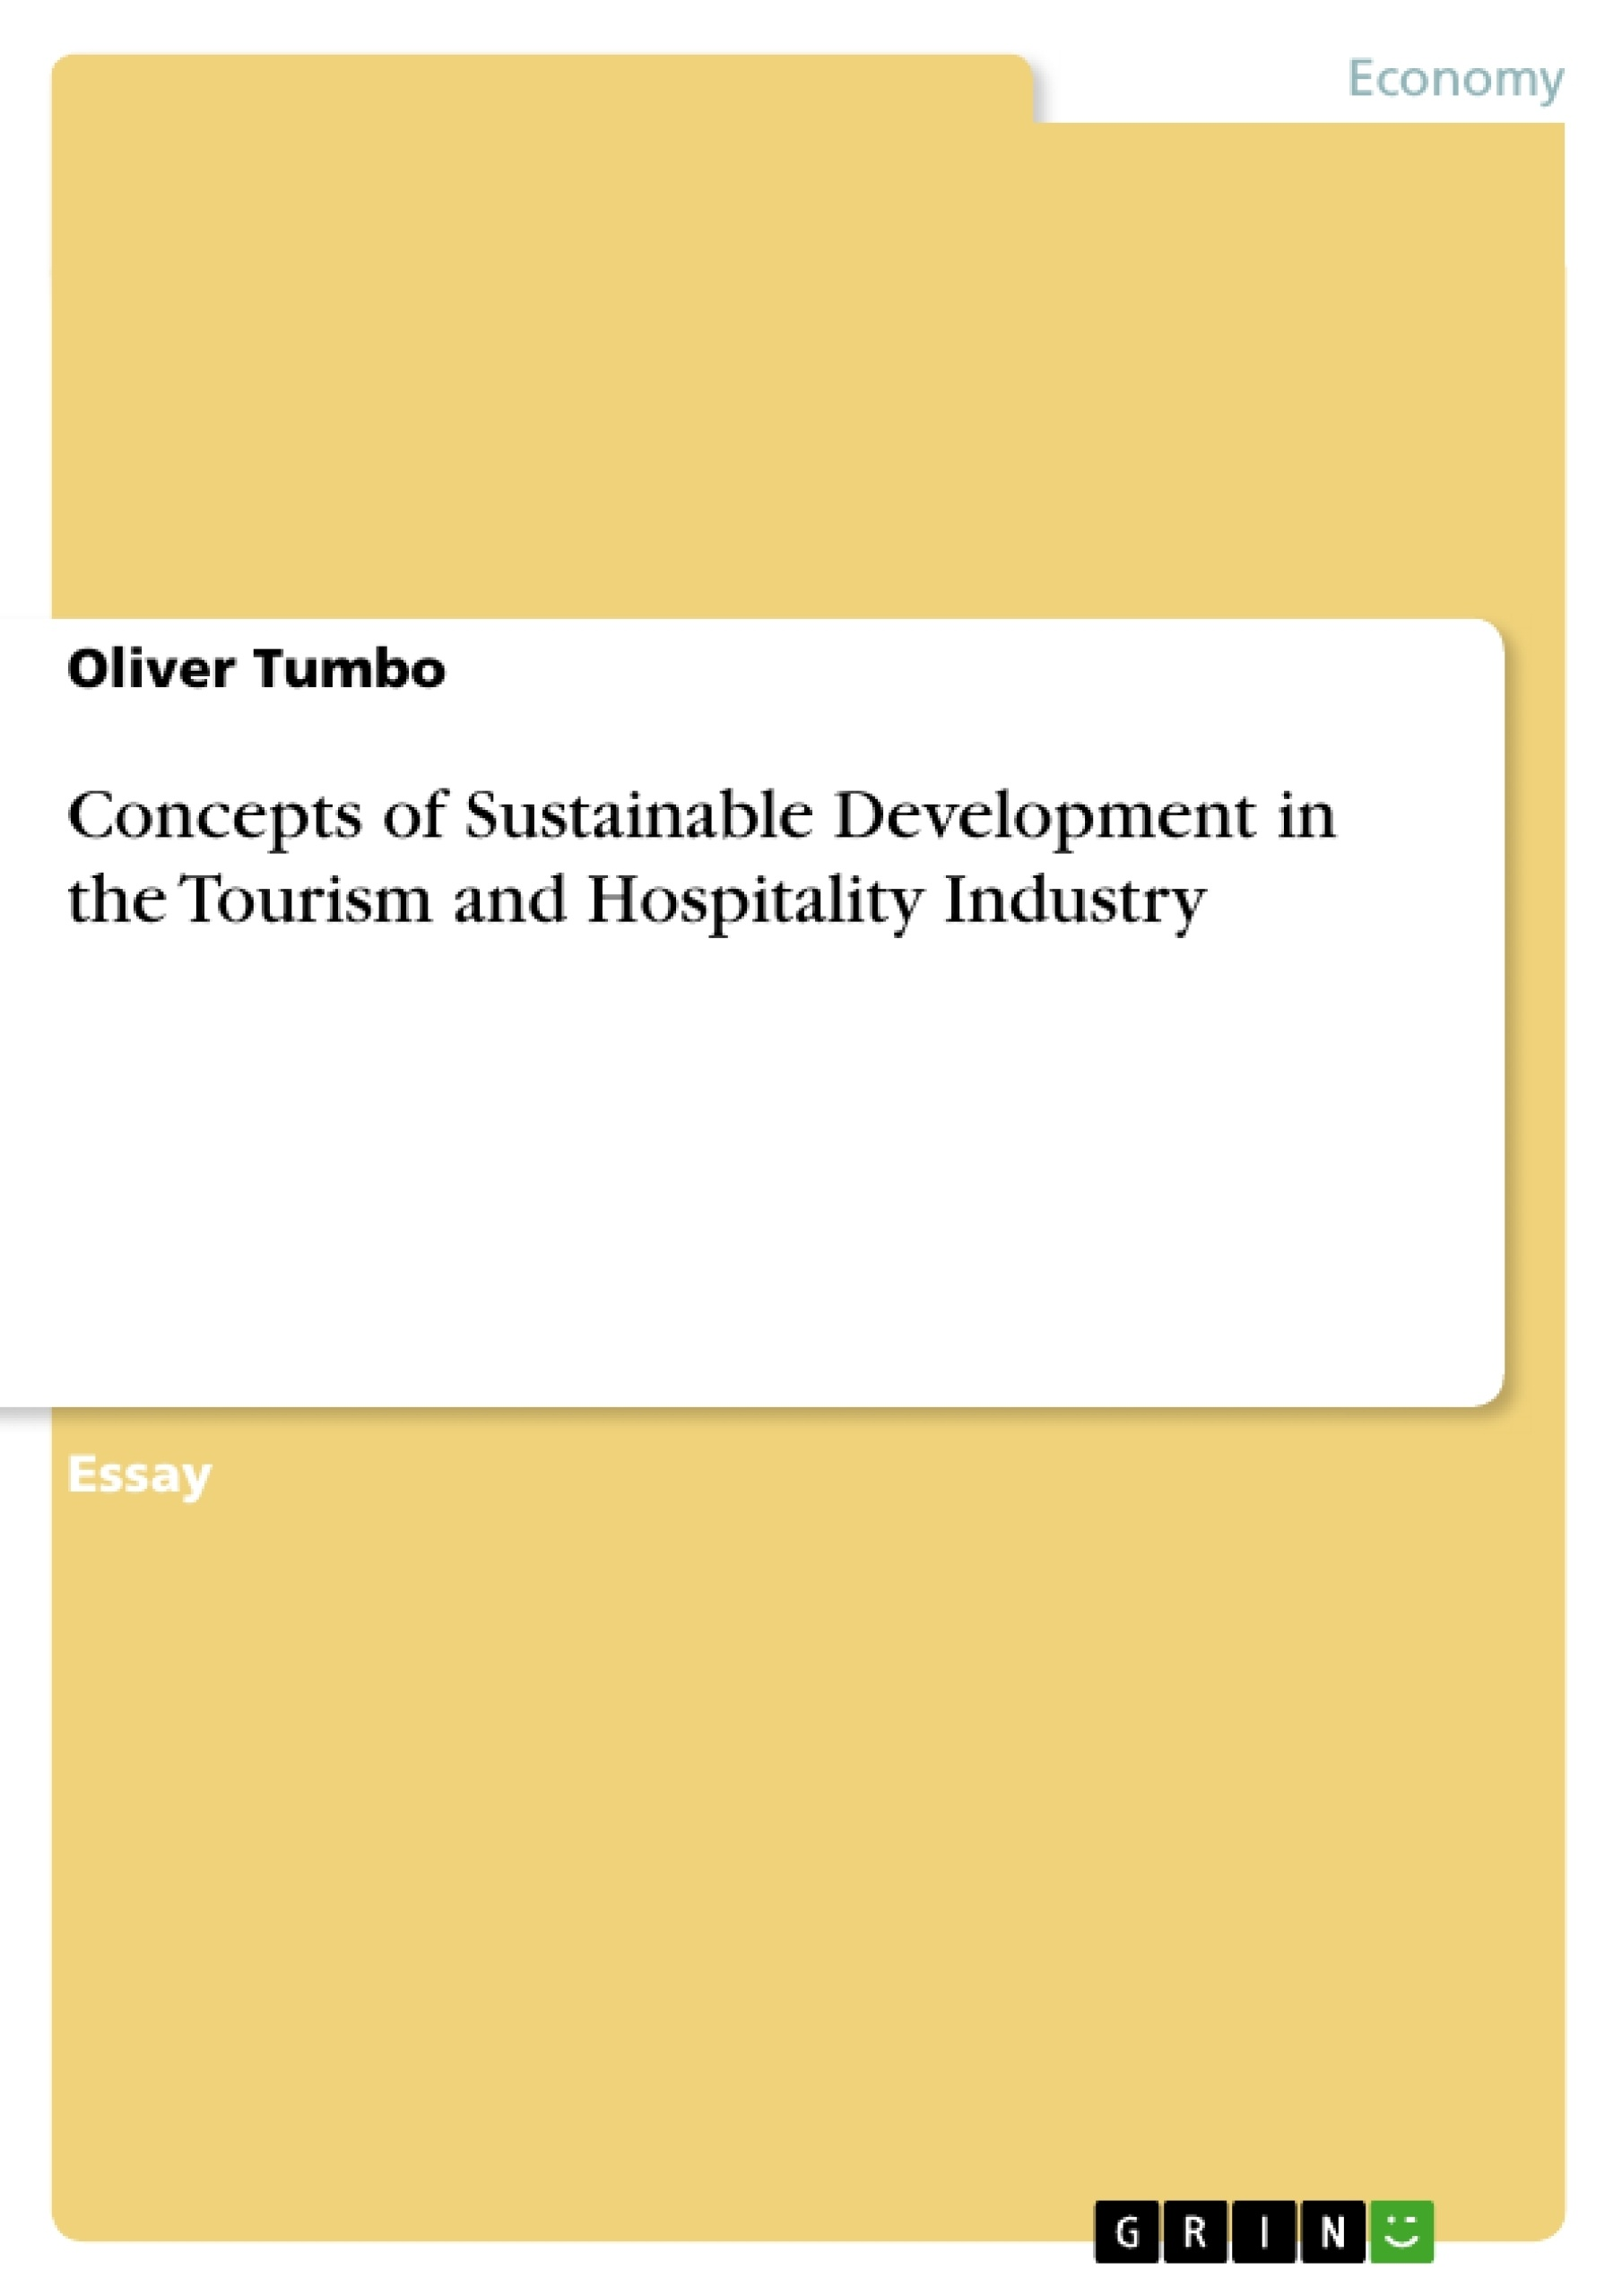 concepts of sustainable development in the tourism and hospitality  upload your own papers earn money and win an iphone x